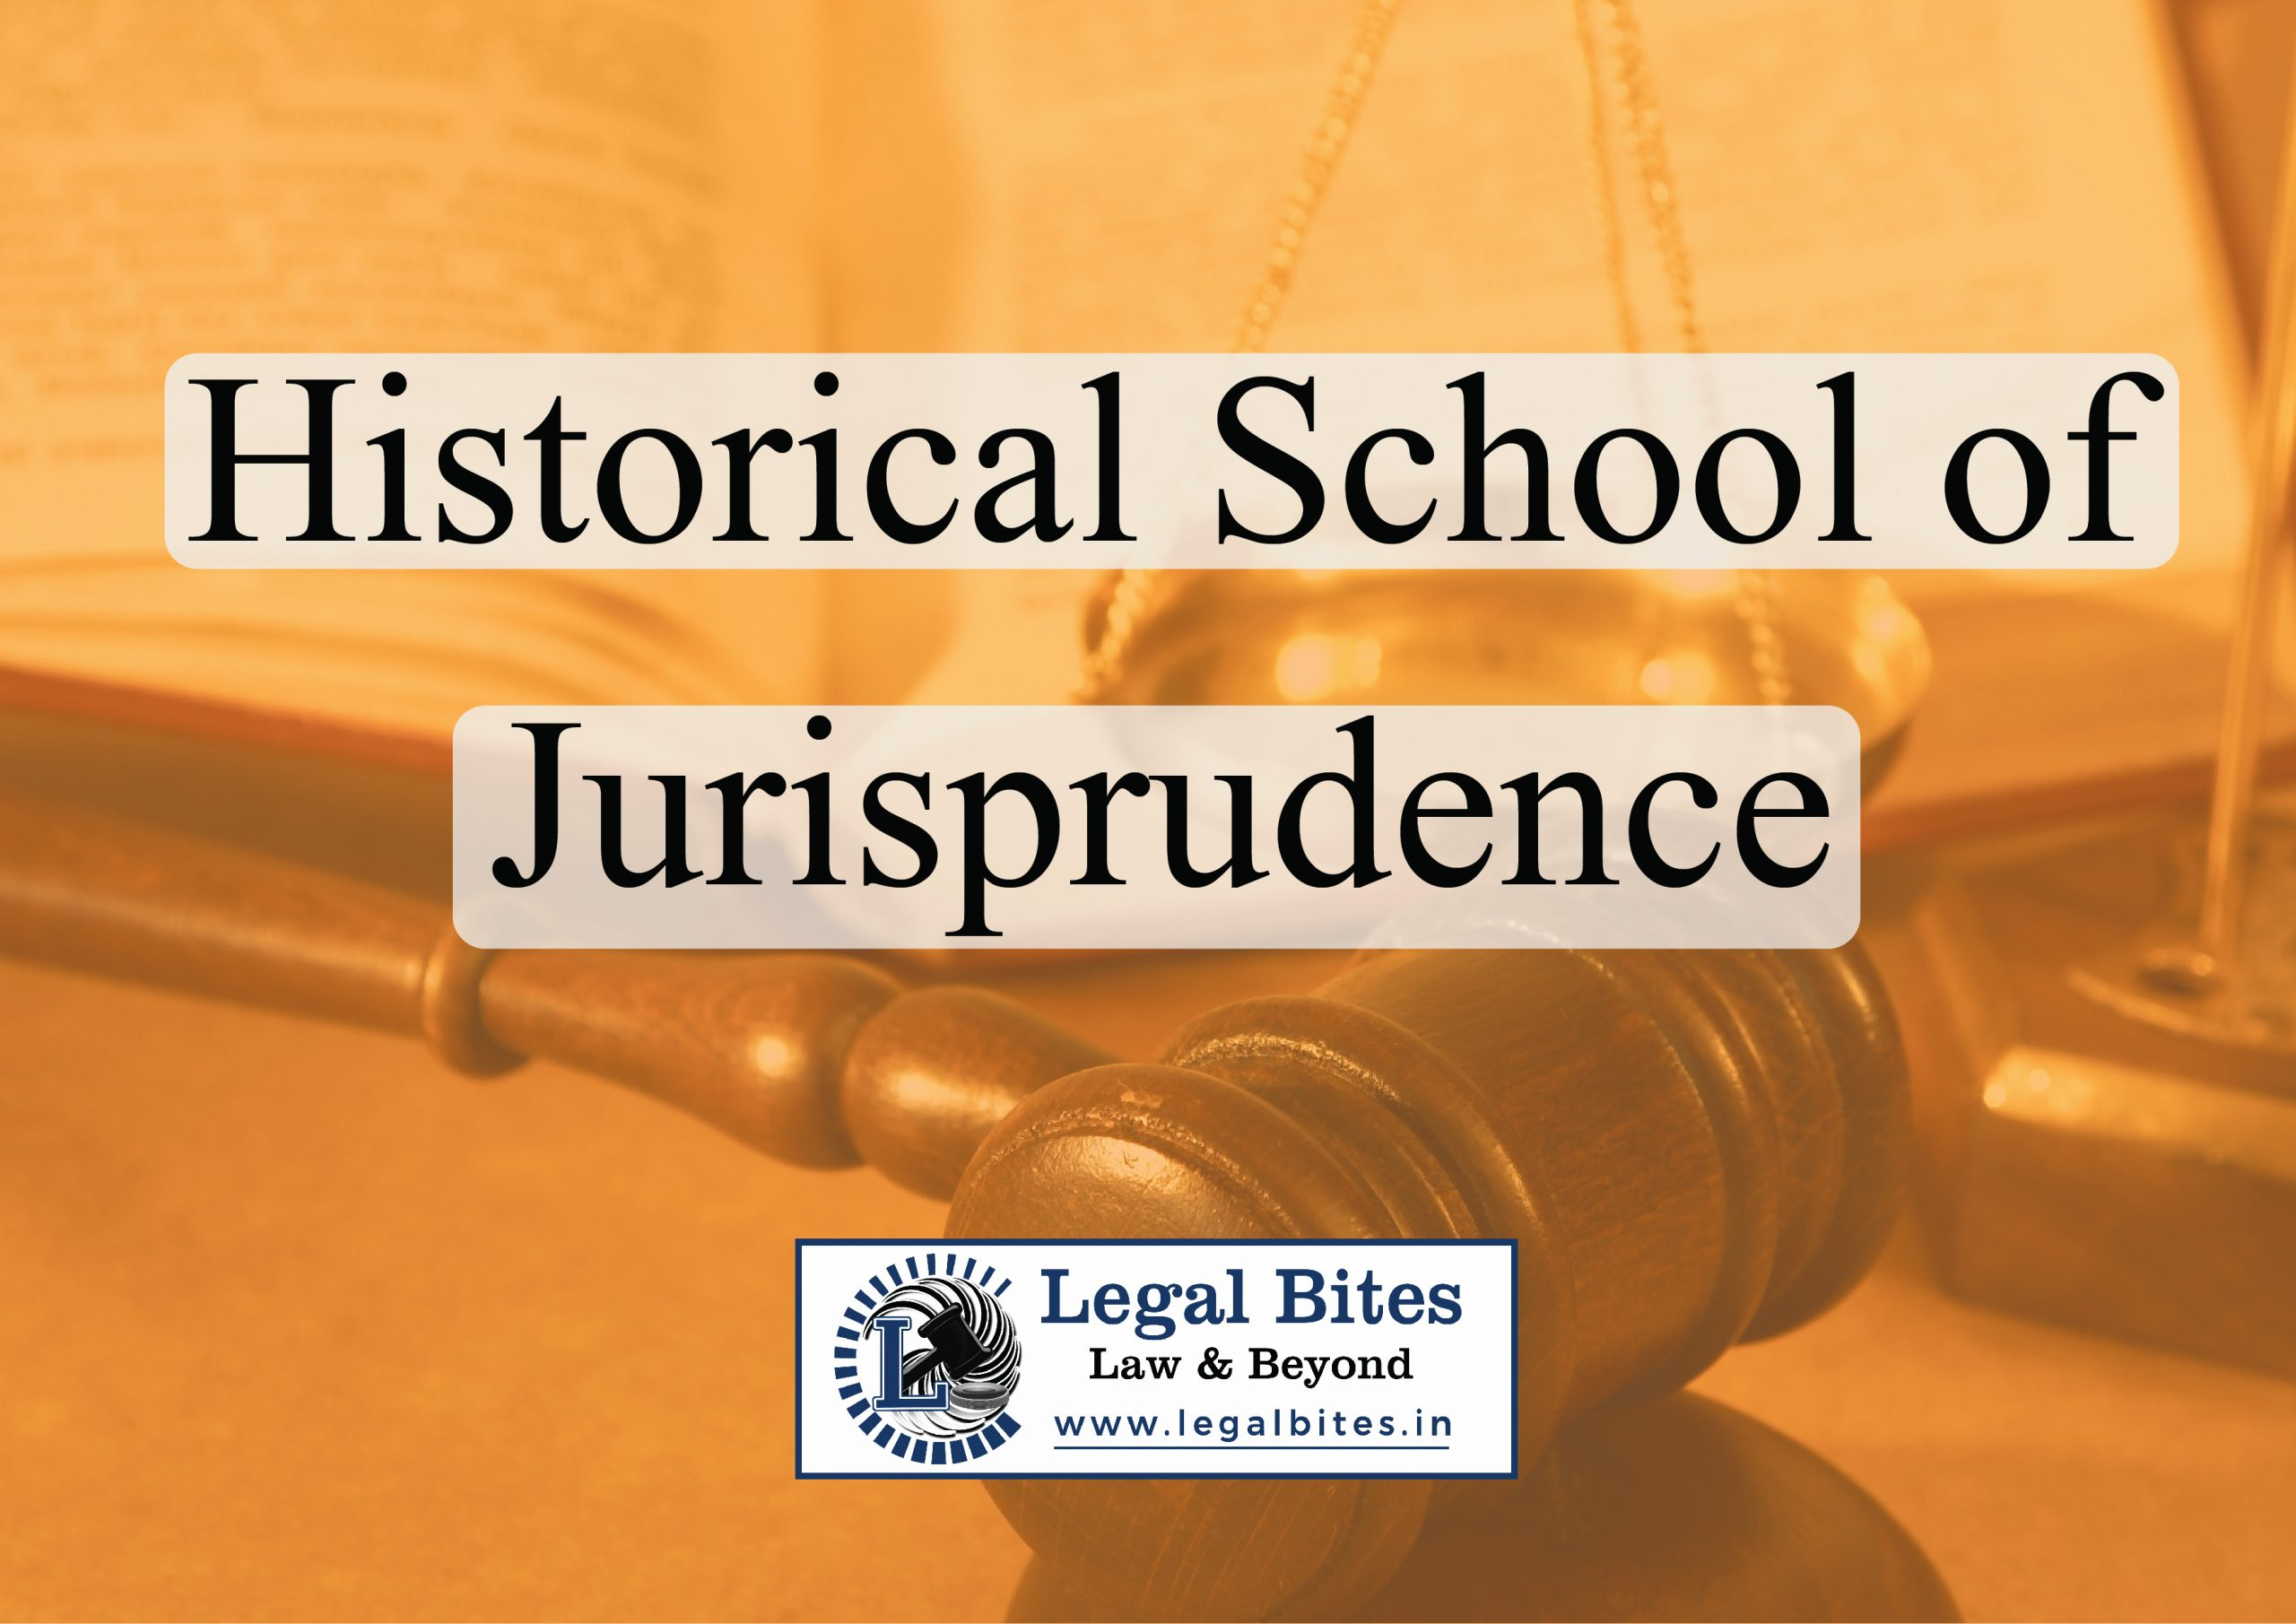 Historical School of Jurisprudence